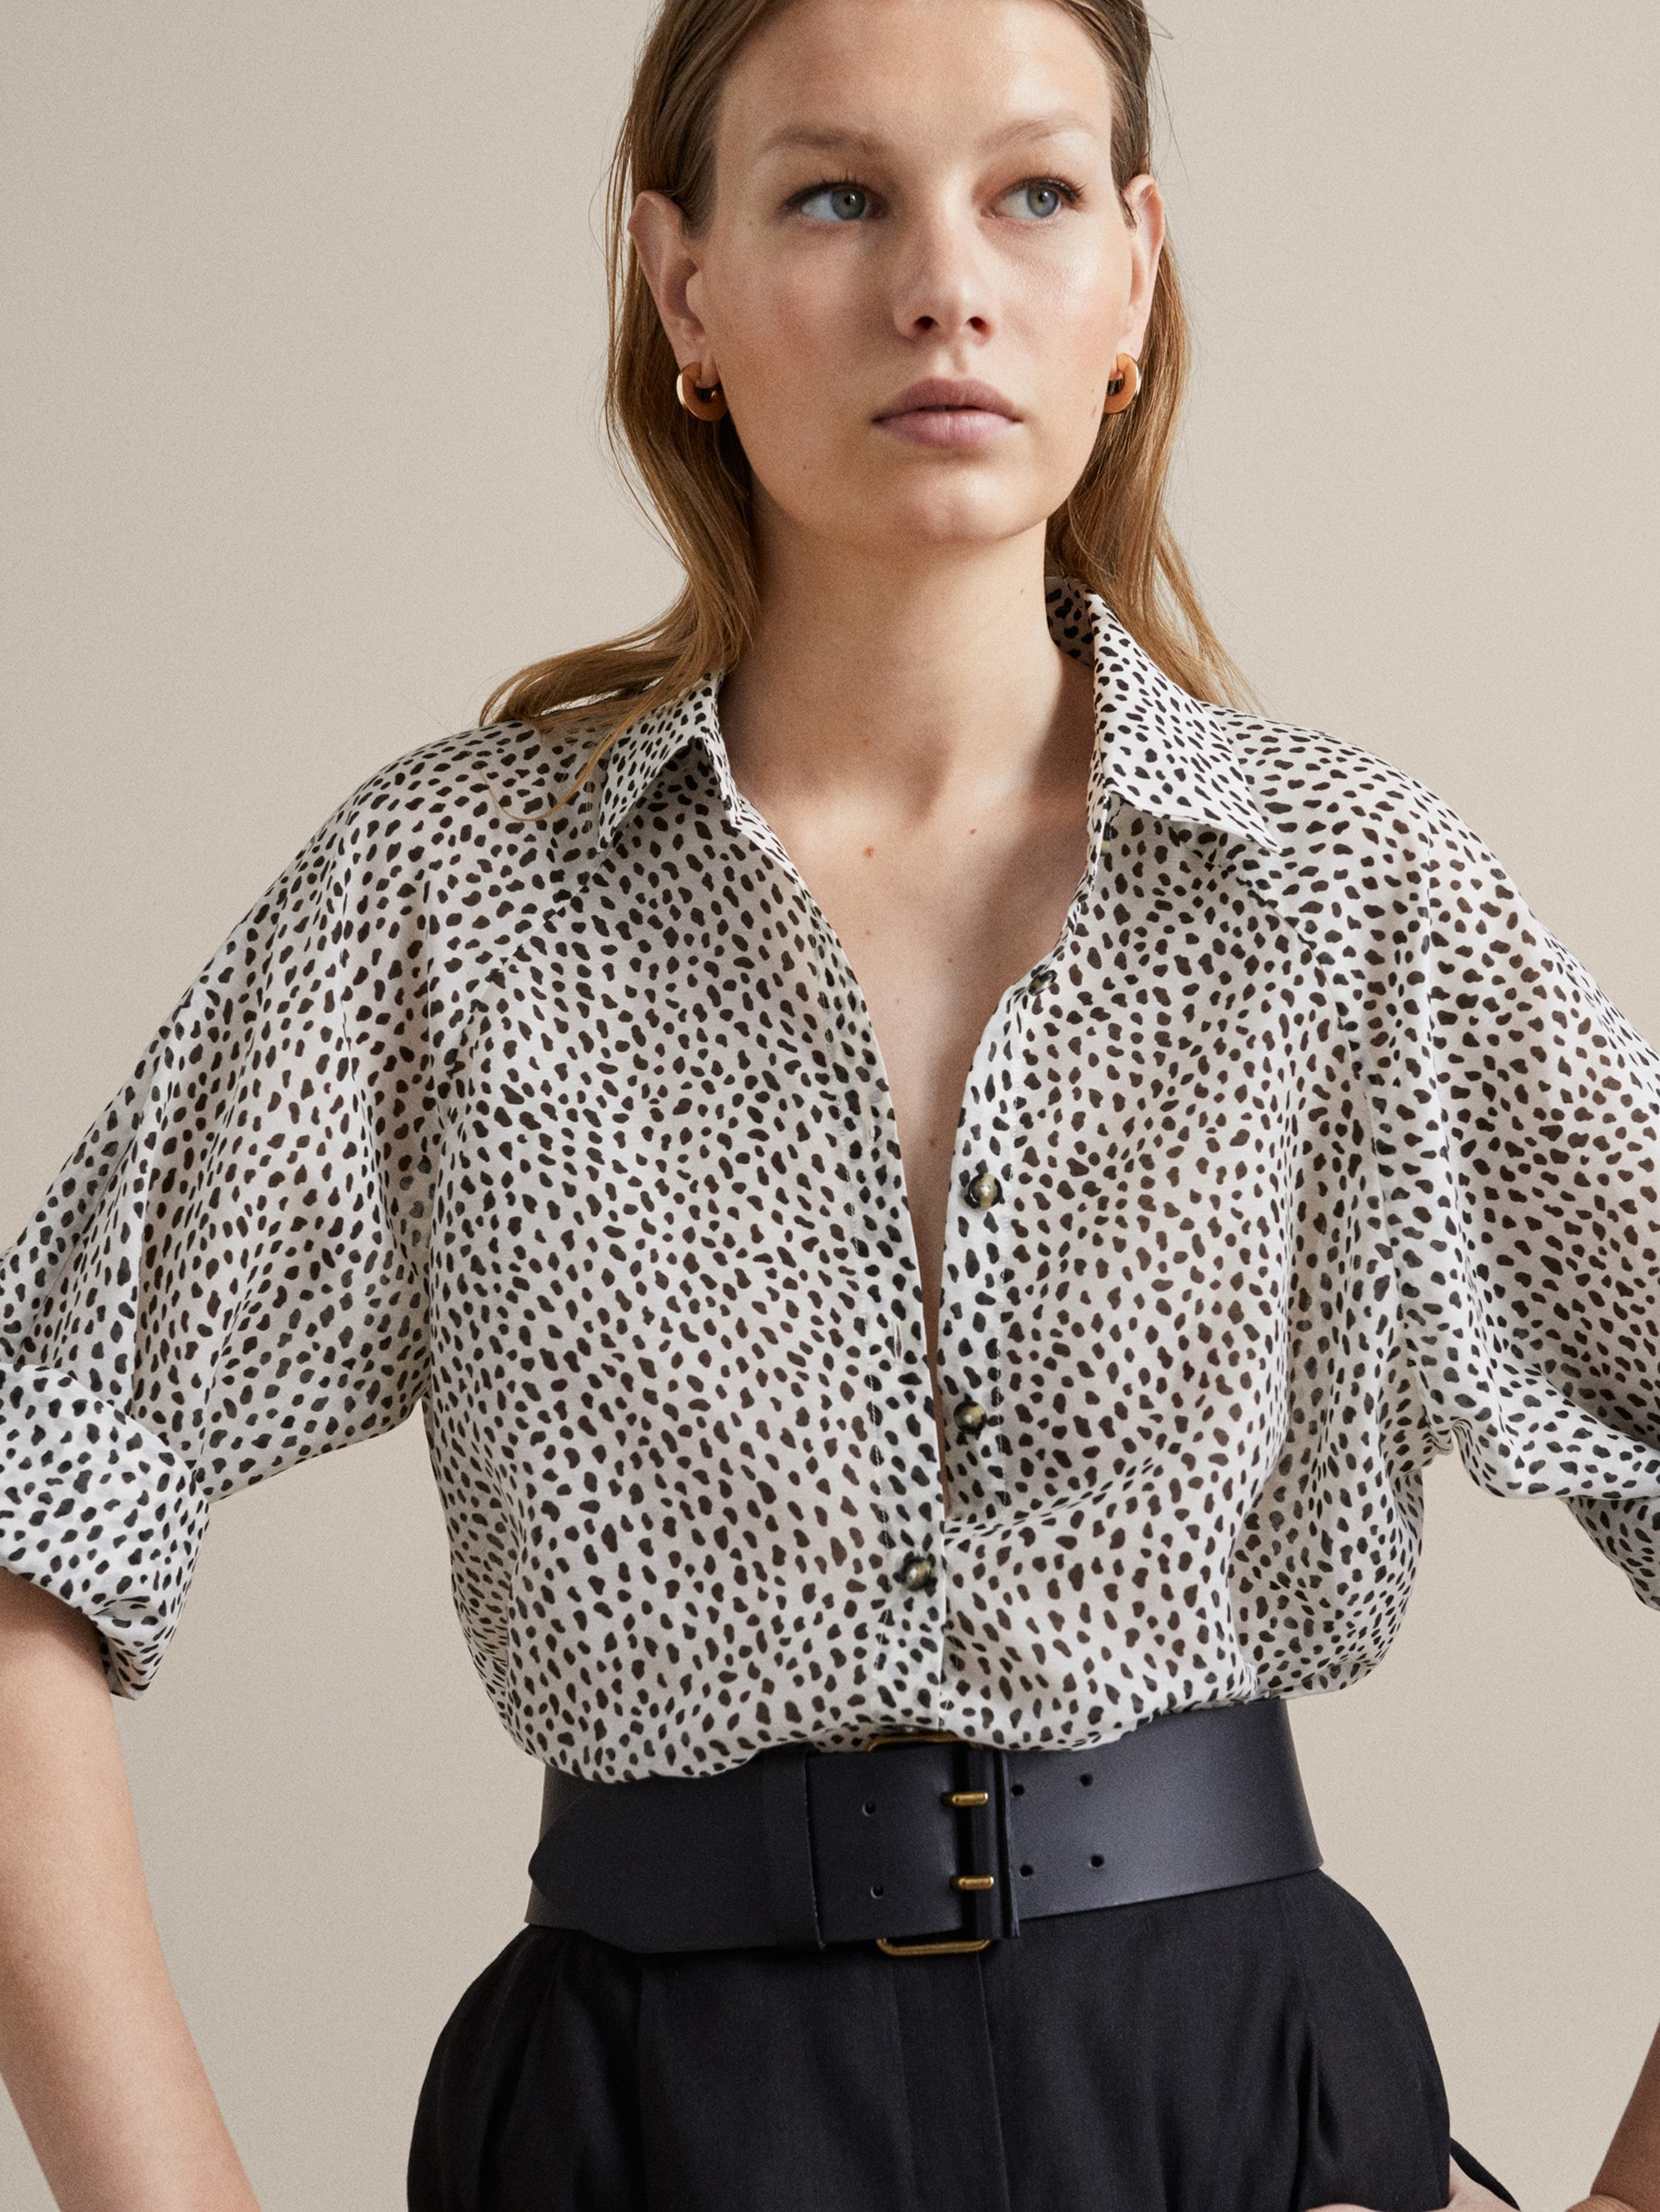 d4f06df40b774 Printed shirts - Shirts   Blouses - COLLECTION - WOMEN - Massimo Dutti